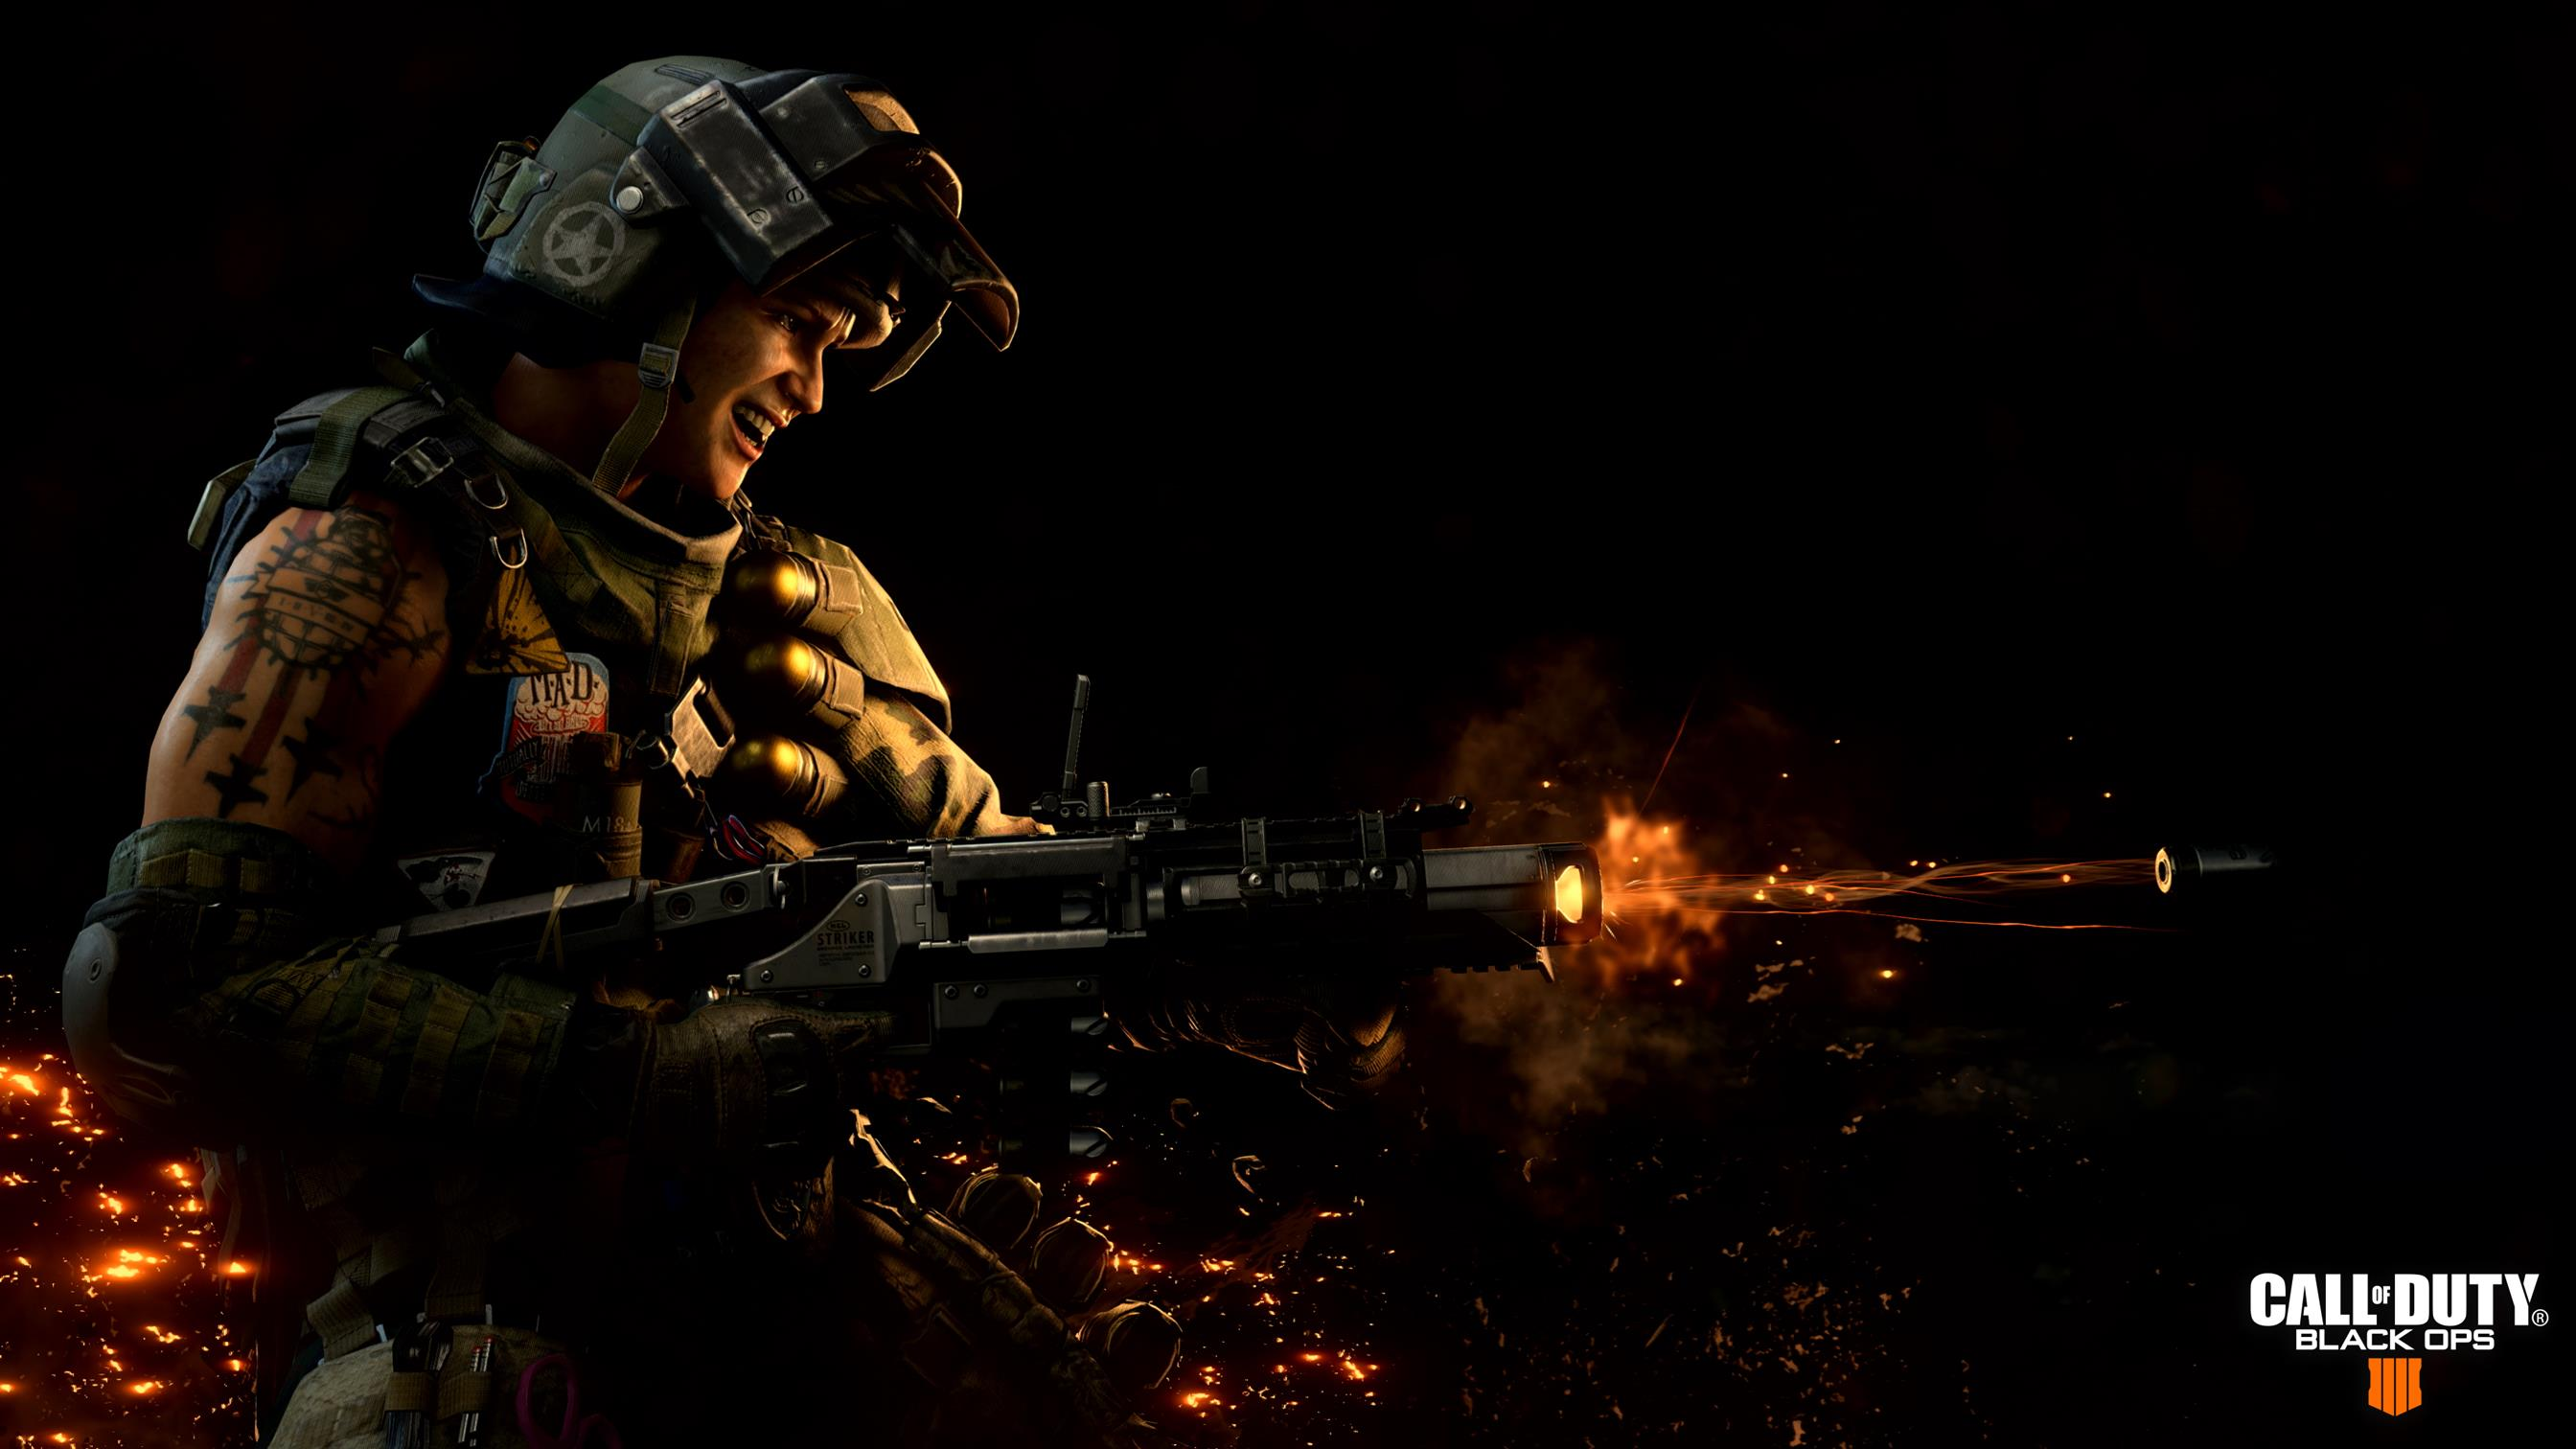 Call of Duty: Black Ops IV Blackout Trailer